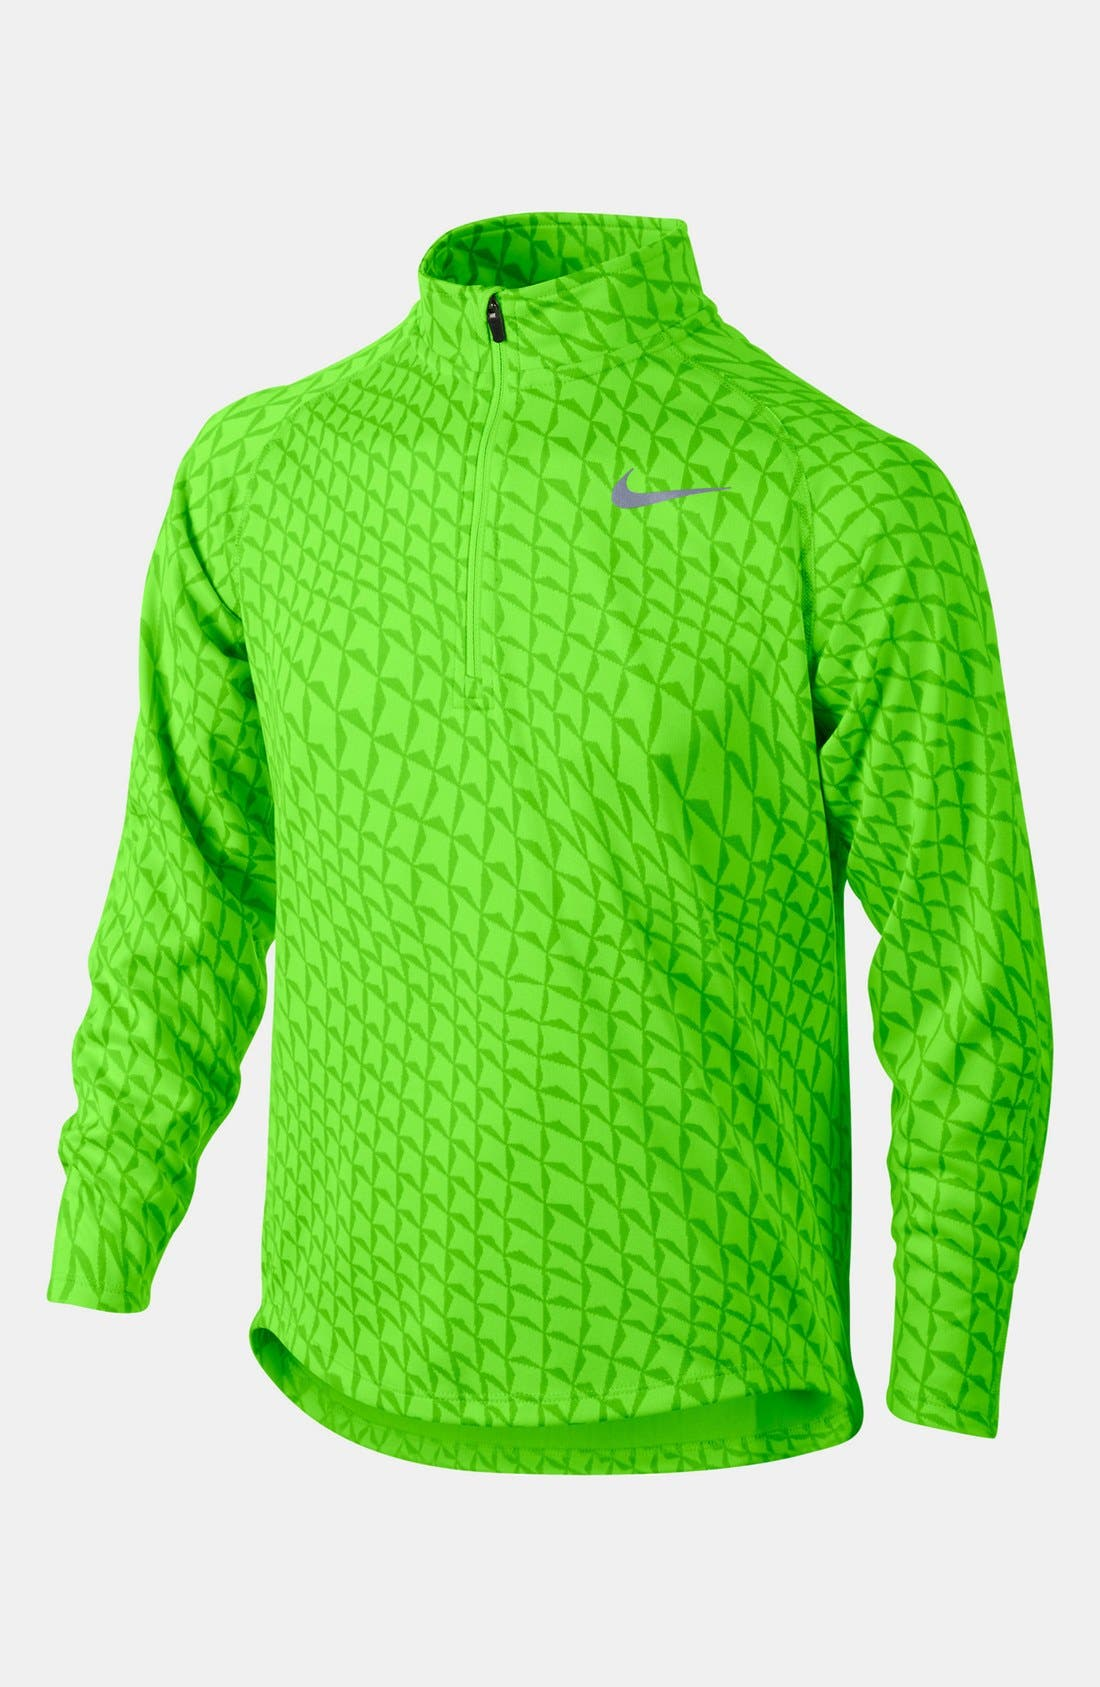 Main Image - Nike 'Element' Dri-FIT Half Zip Running Top (Big Boys)